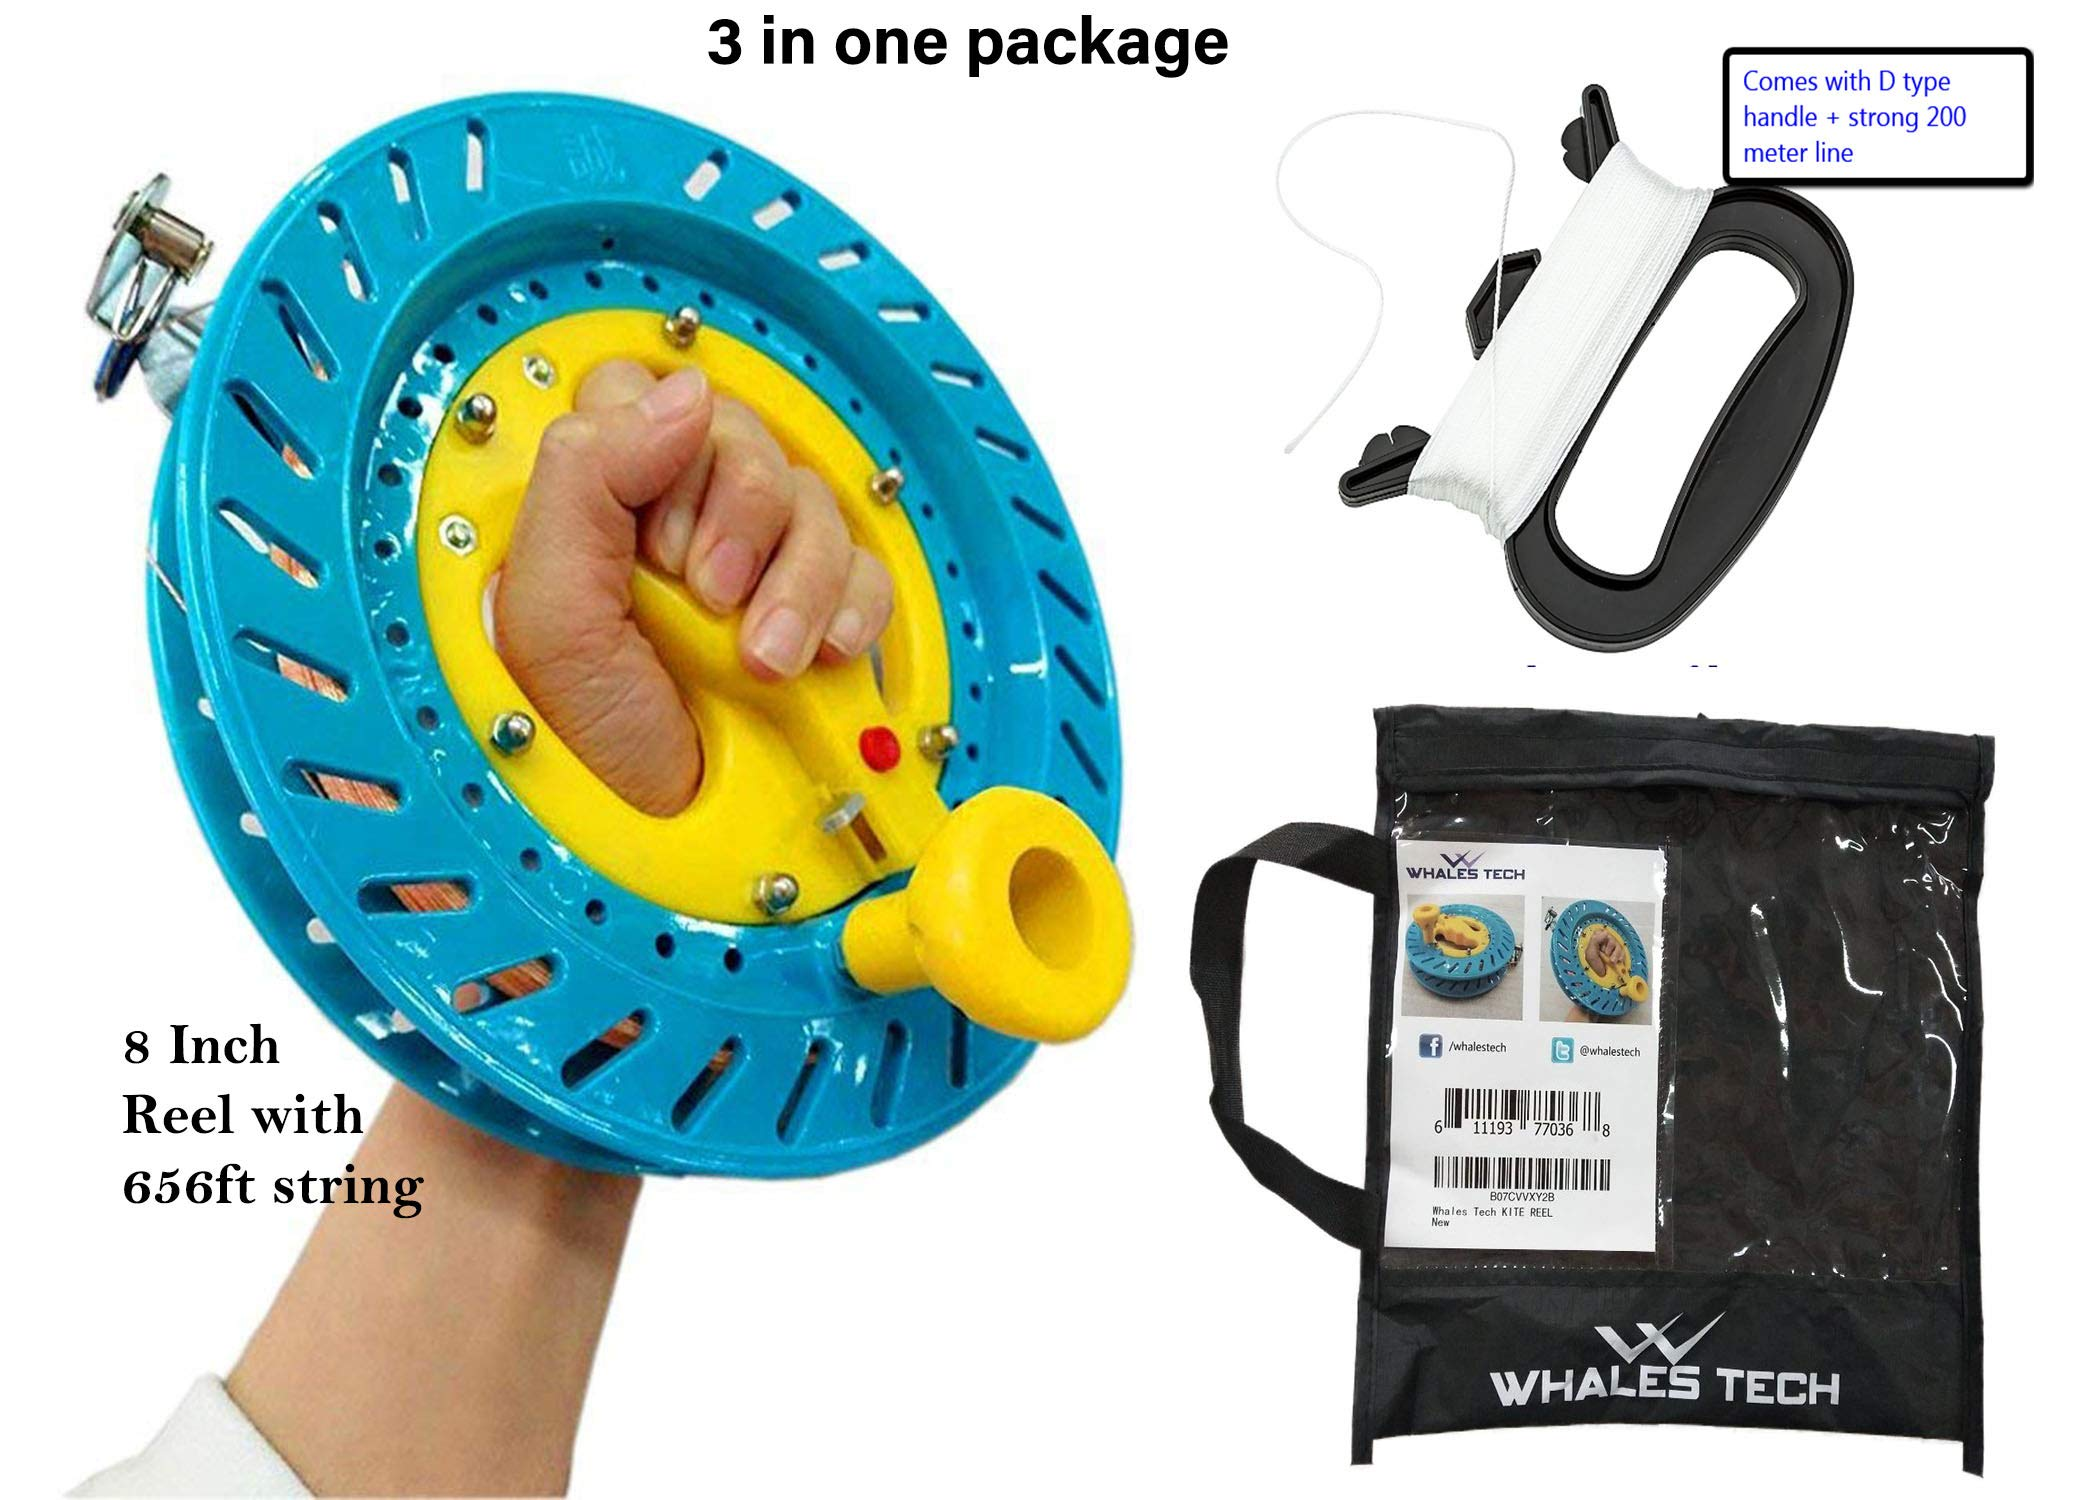 Whales Tech Kite Reel String Winder Blue Steel Lockable Handle for Outdoor Kite Strong Flying String with Line Smooth Rotation Ball Bearing for Adult and Kids 3 Pack by Whales Tech